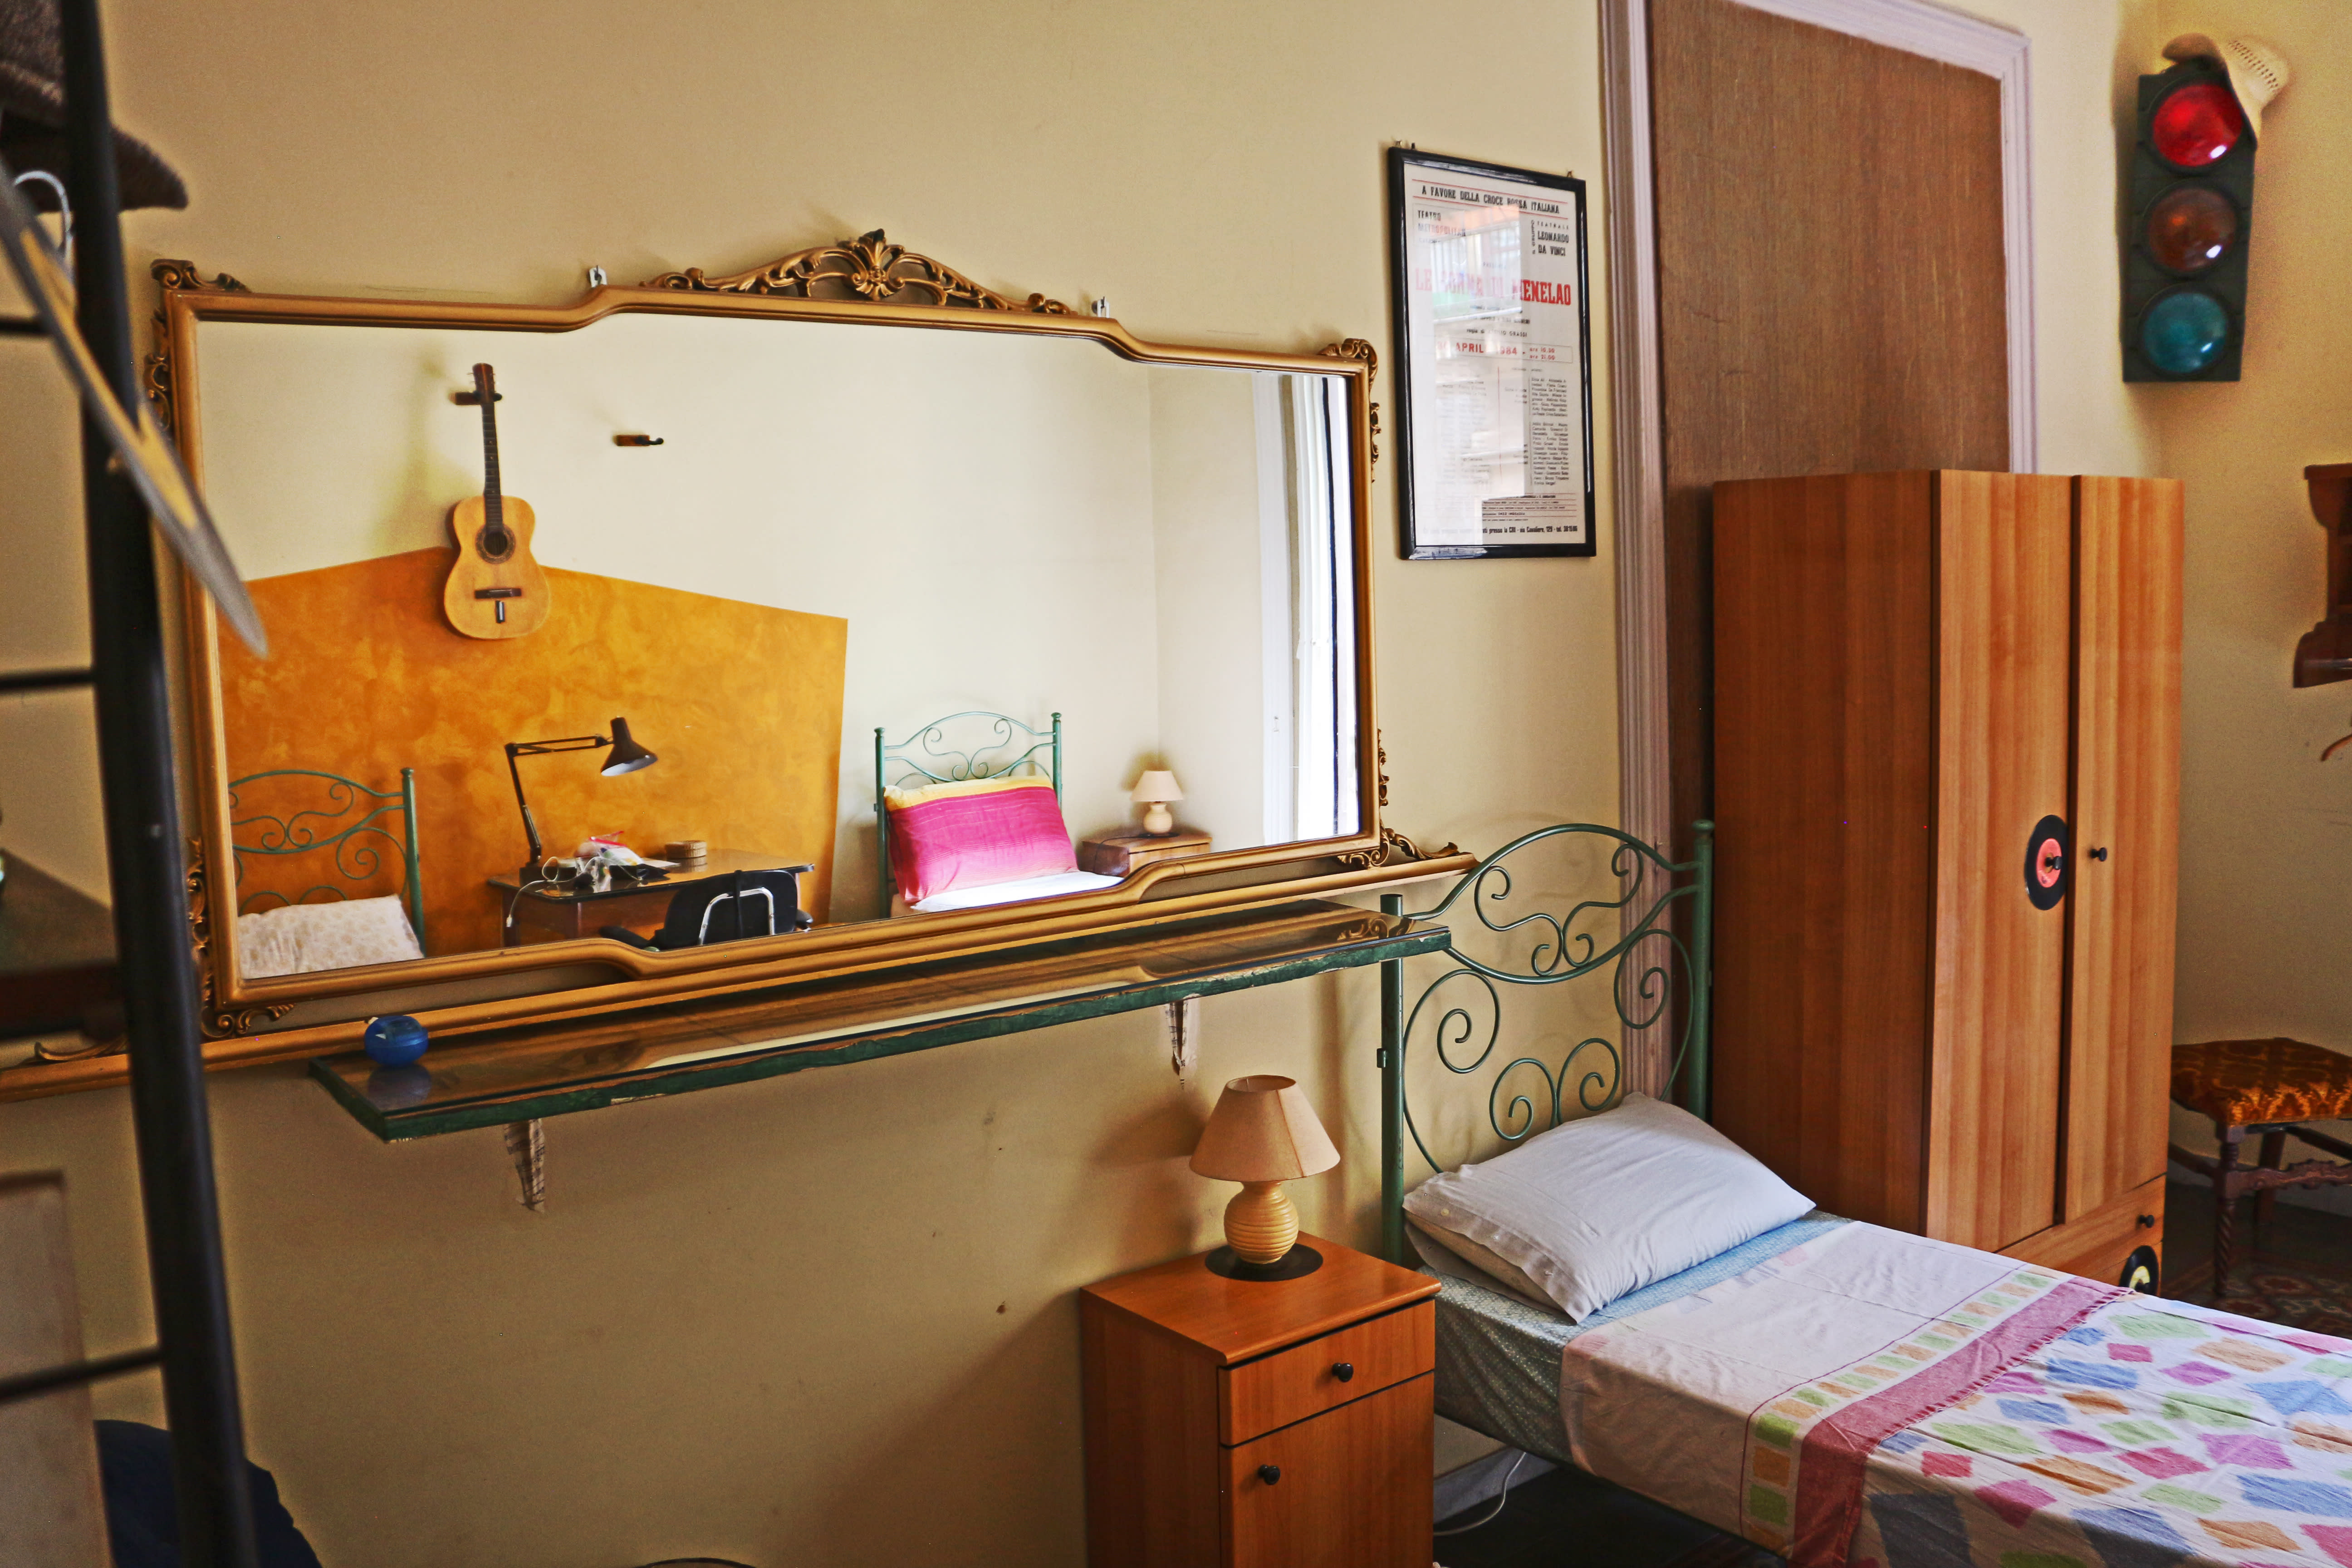 HOSTEL - Casa Verdi - House of Travelers